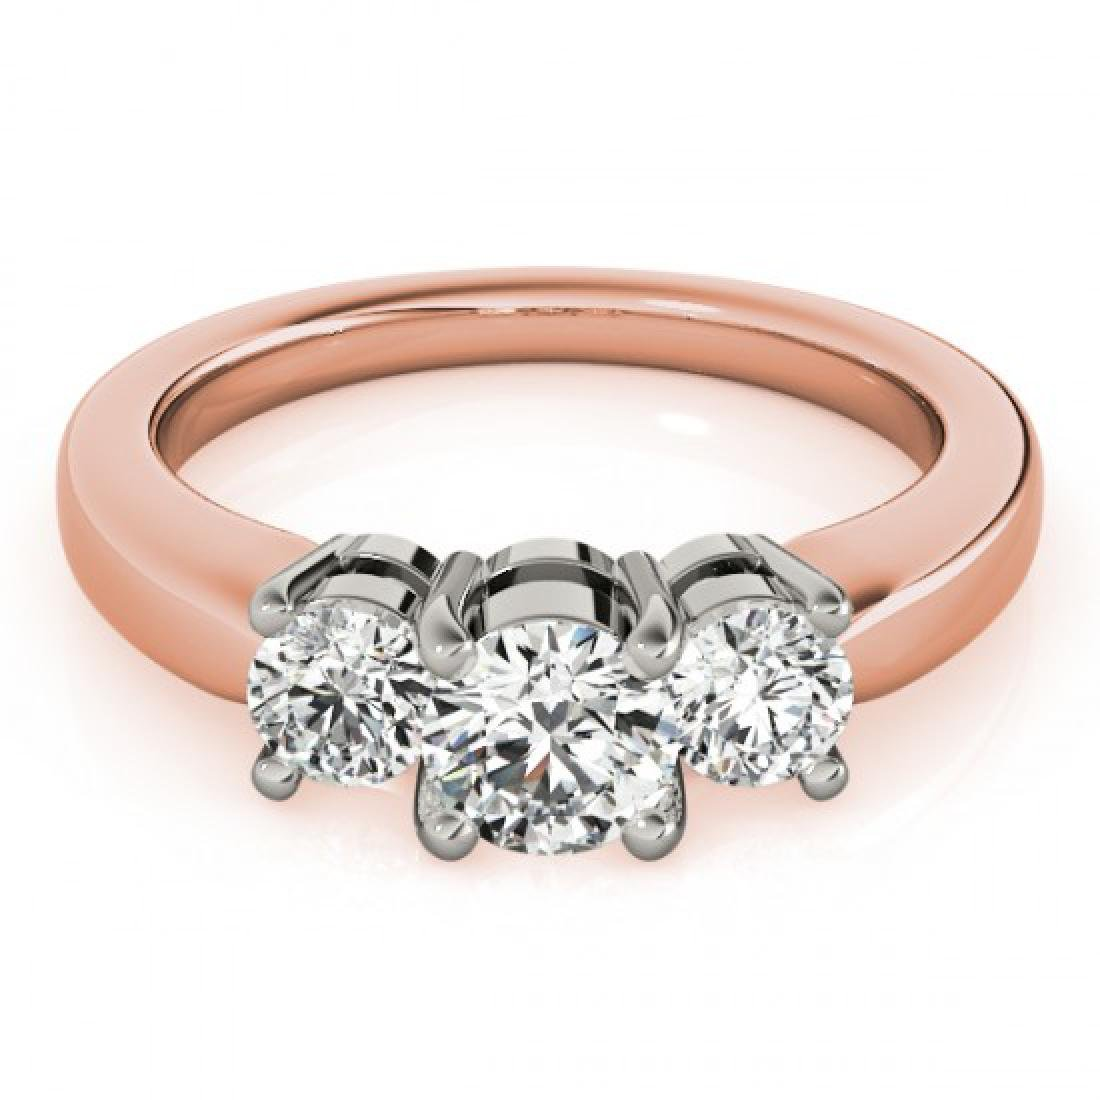 2 CTW Certified VS/SI Diamond 3 Stone Solitaire Ring